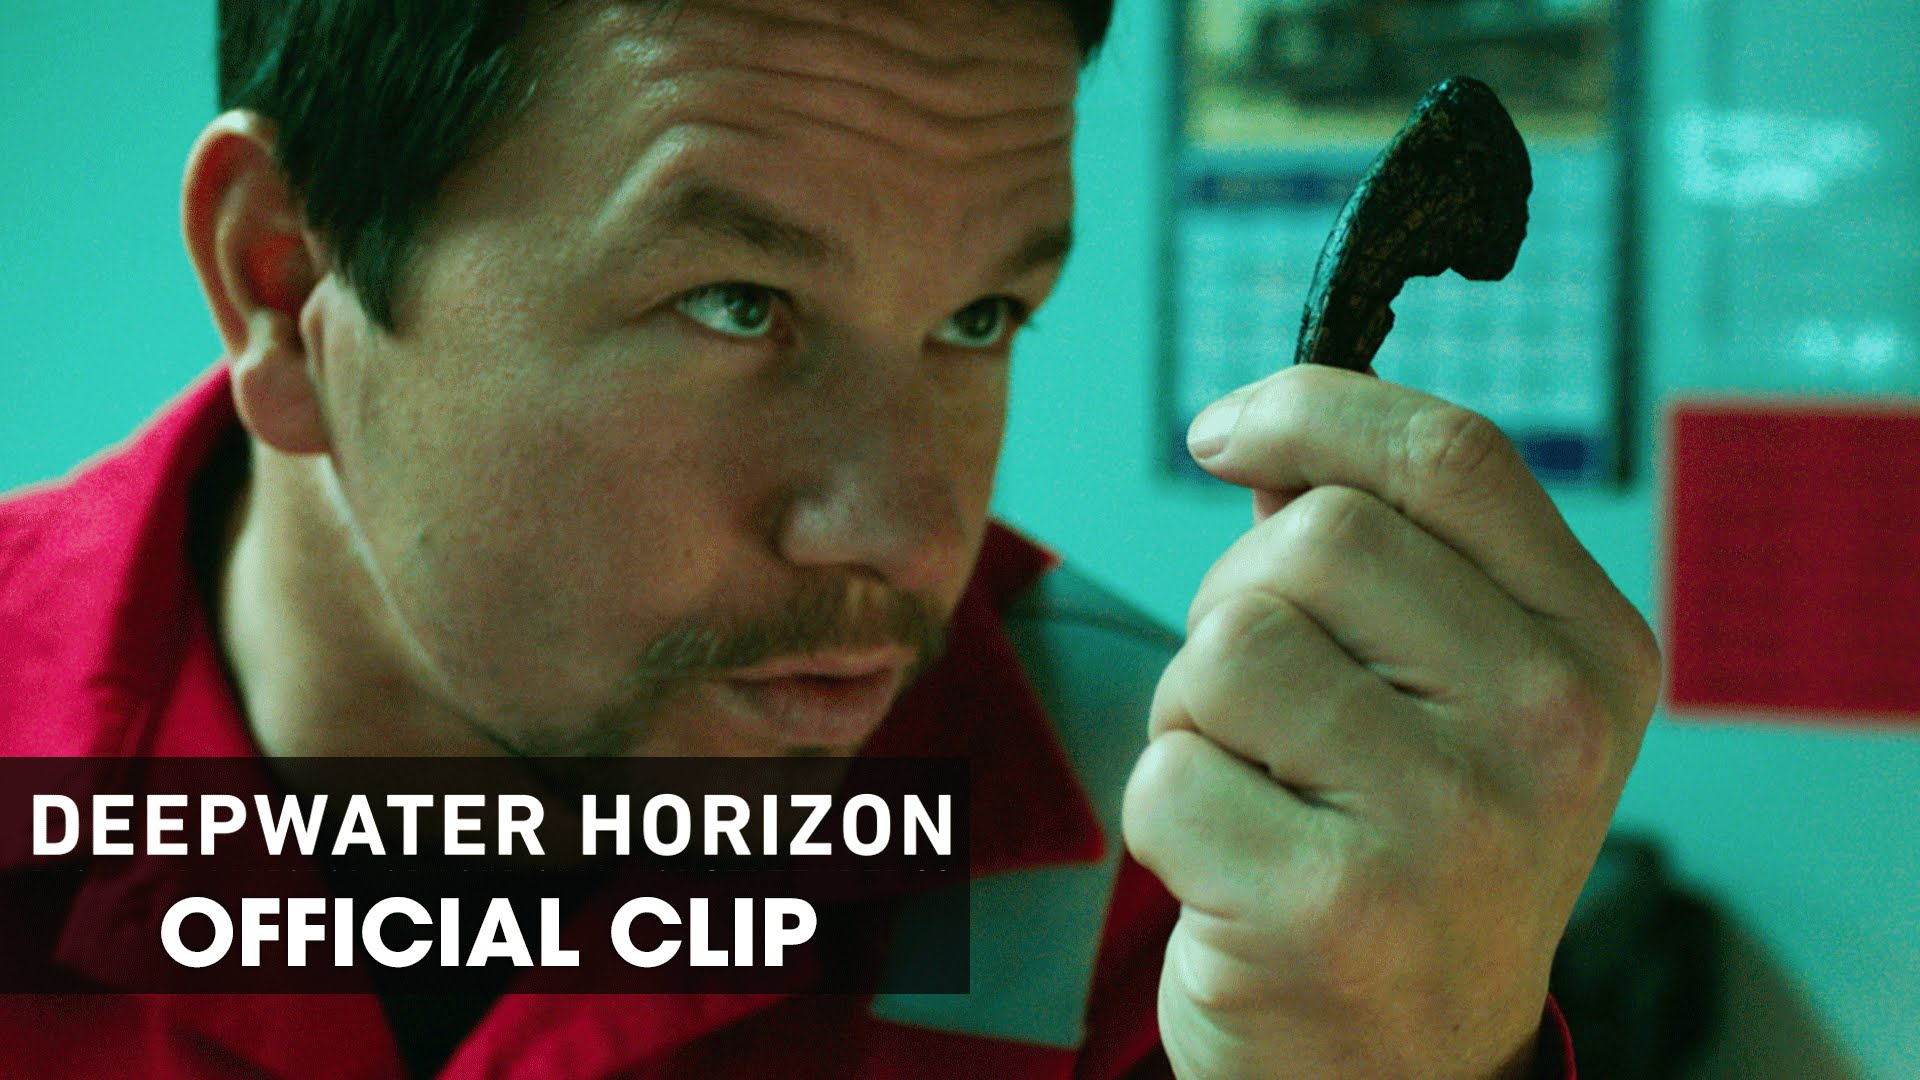 Deepwater Horizon (2016 Movie) Official Clip – 'I'll Call You Back'